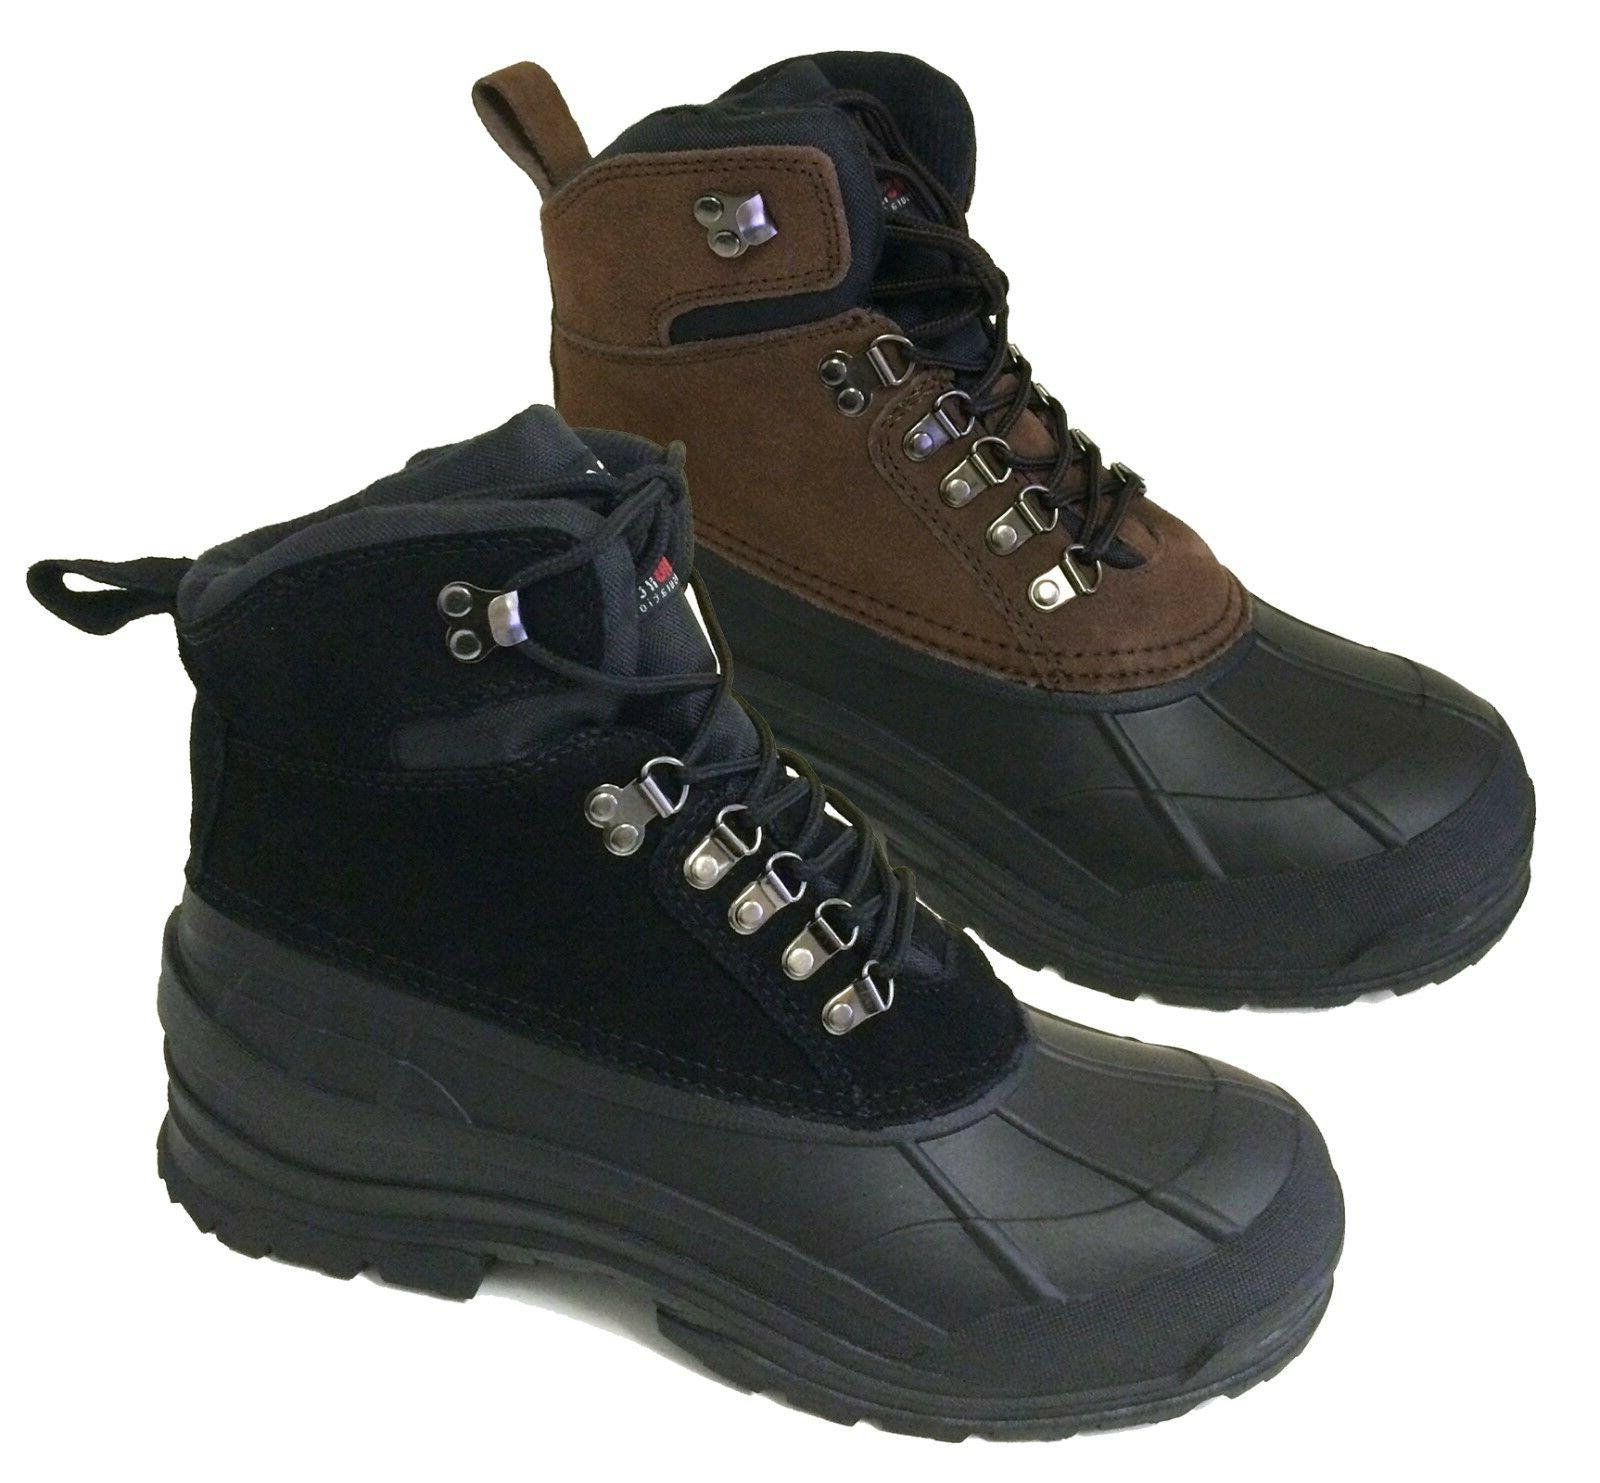 new men s winter boots leather warm